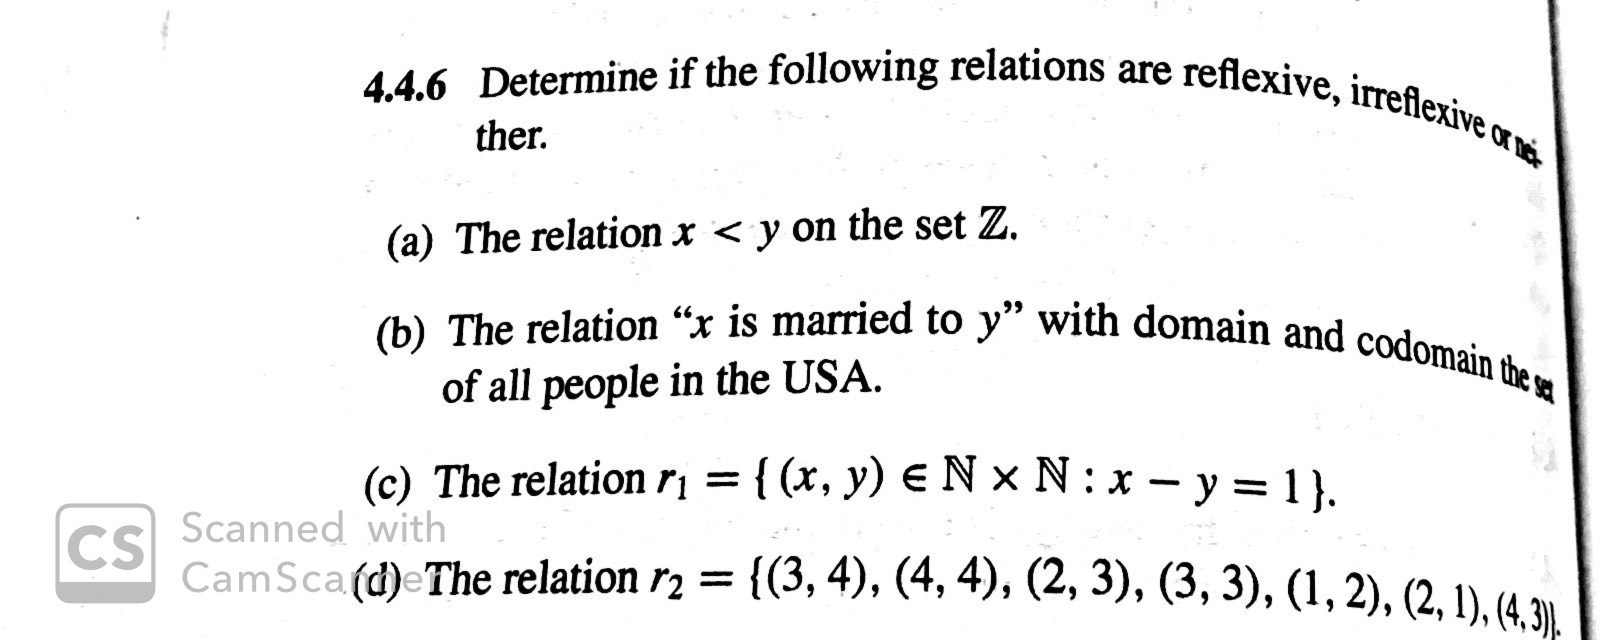 """4.4.6 Determine if the following relations are reflexive, irreflexive o ther (a) The relation x < y on the set Z. (b) The relation """"x is married to y"""" with domain and codomain the a of all people in the USA (c) The relation r= { (x, y) e N x N: x-y = 1 }. Scanned with CS CamSca (d)eThe relation r2 = {(3, 4), (4,4), (2, 3), (3, 3), (1,2), (2,1), (4,3)."""